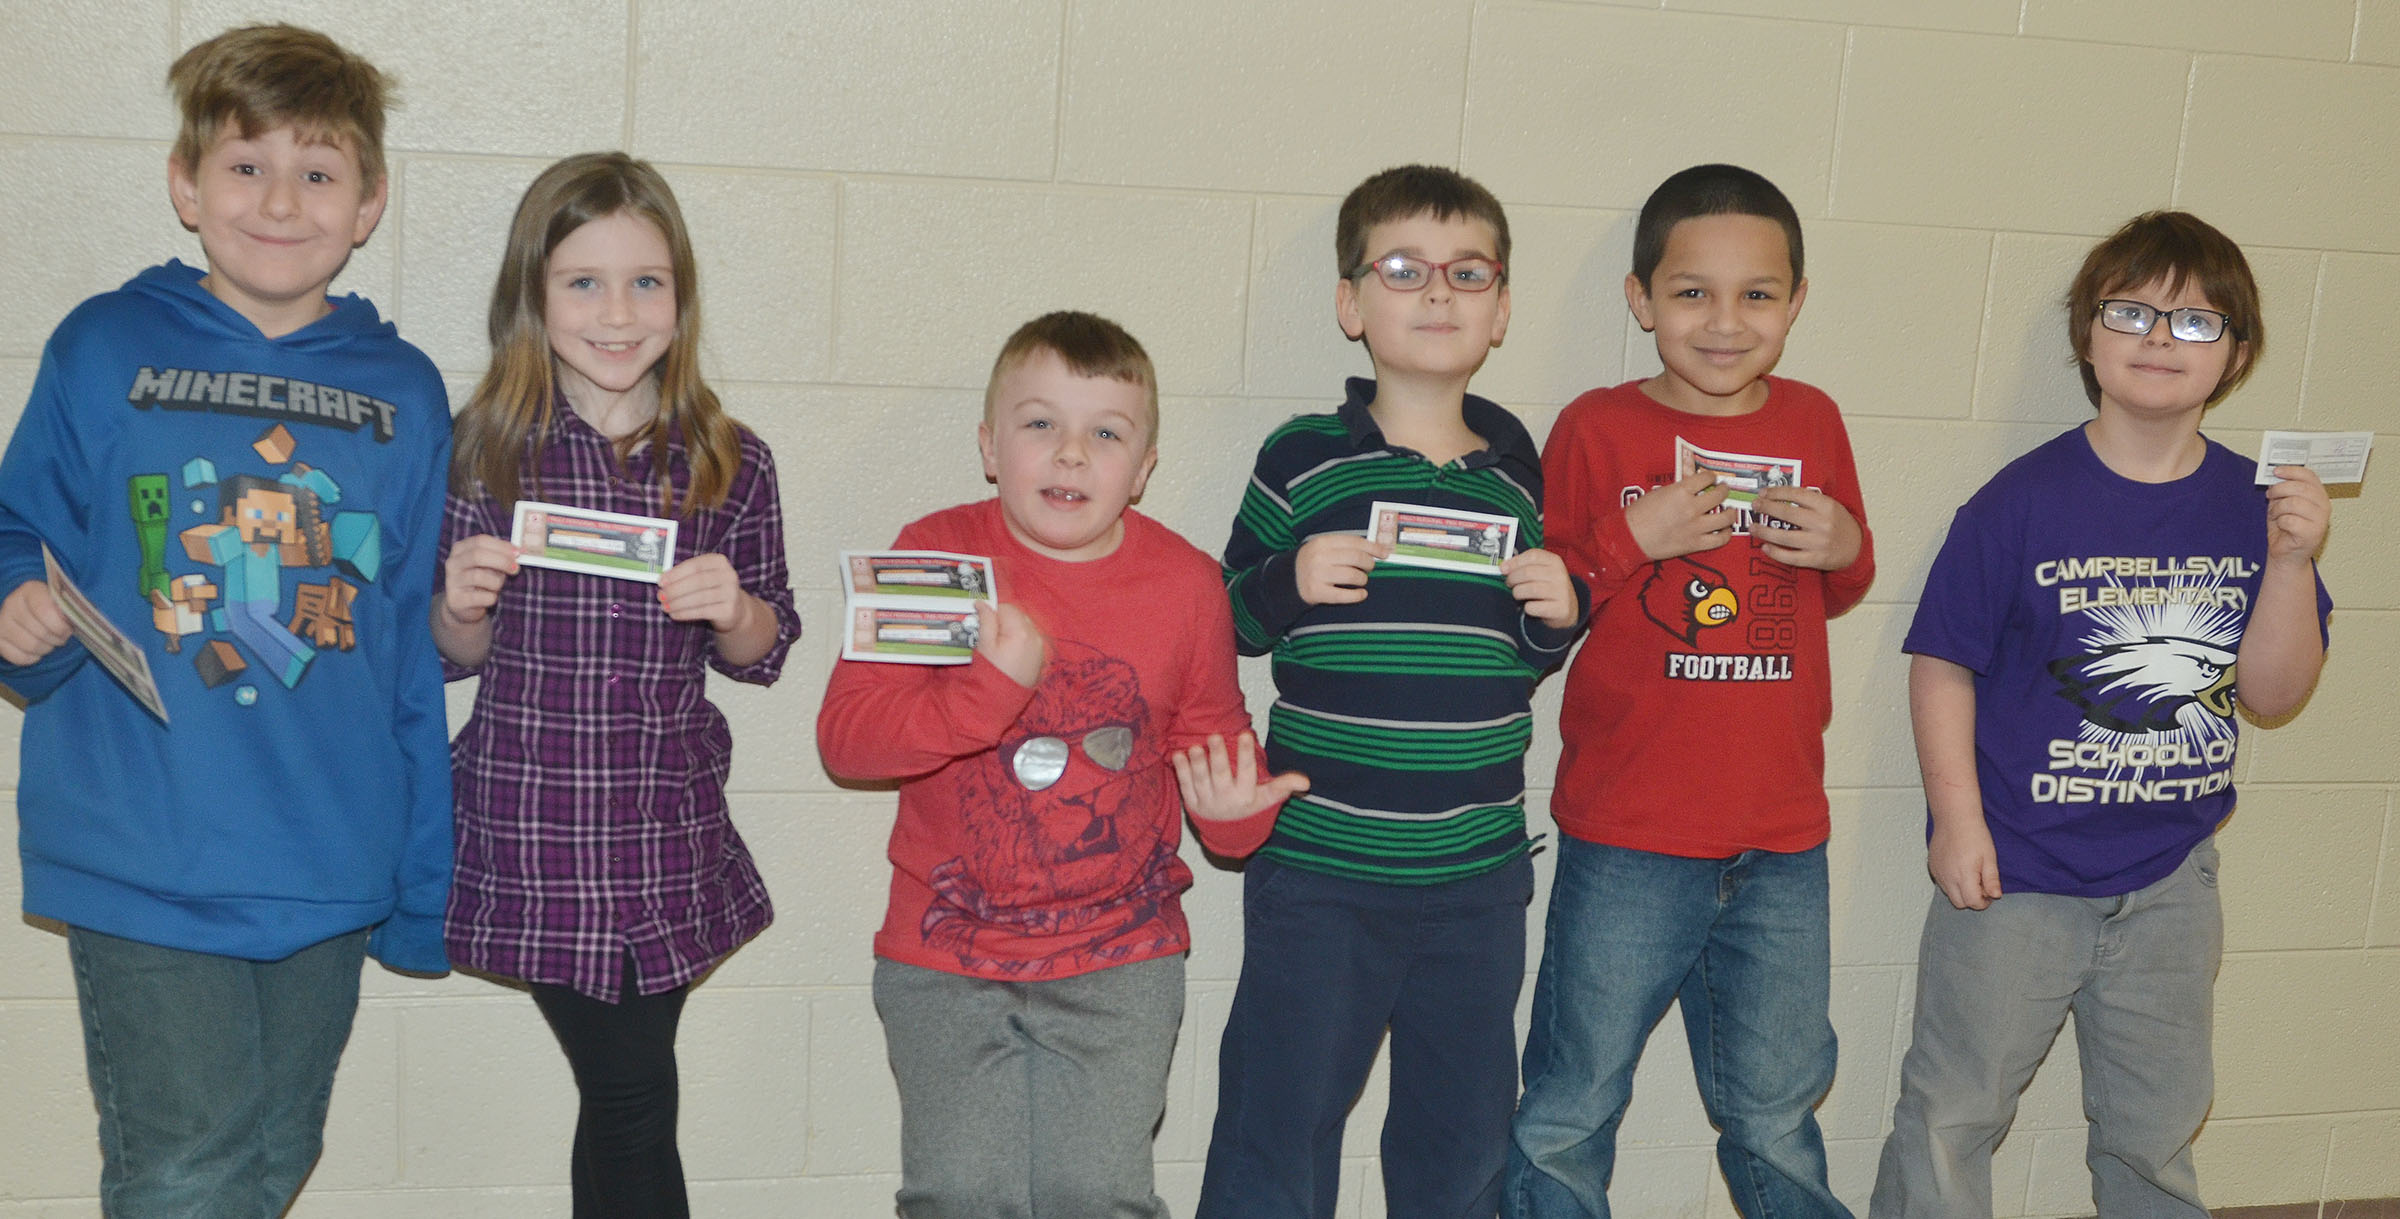 Greer's students who recently received free pizza coupons for accumulating at least five points include, from left, Tommy Caswell, Izzy Brunelle, Hunter Clark, Sawyer Lange, Makyian Bridgewater and Caleb Ortiz.